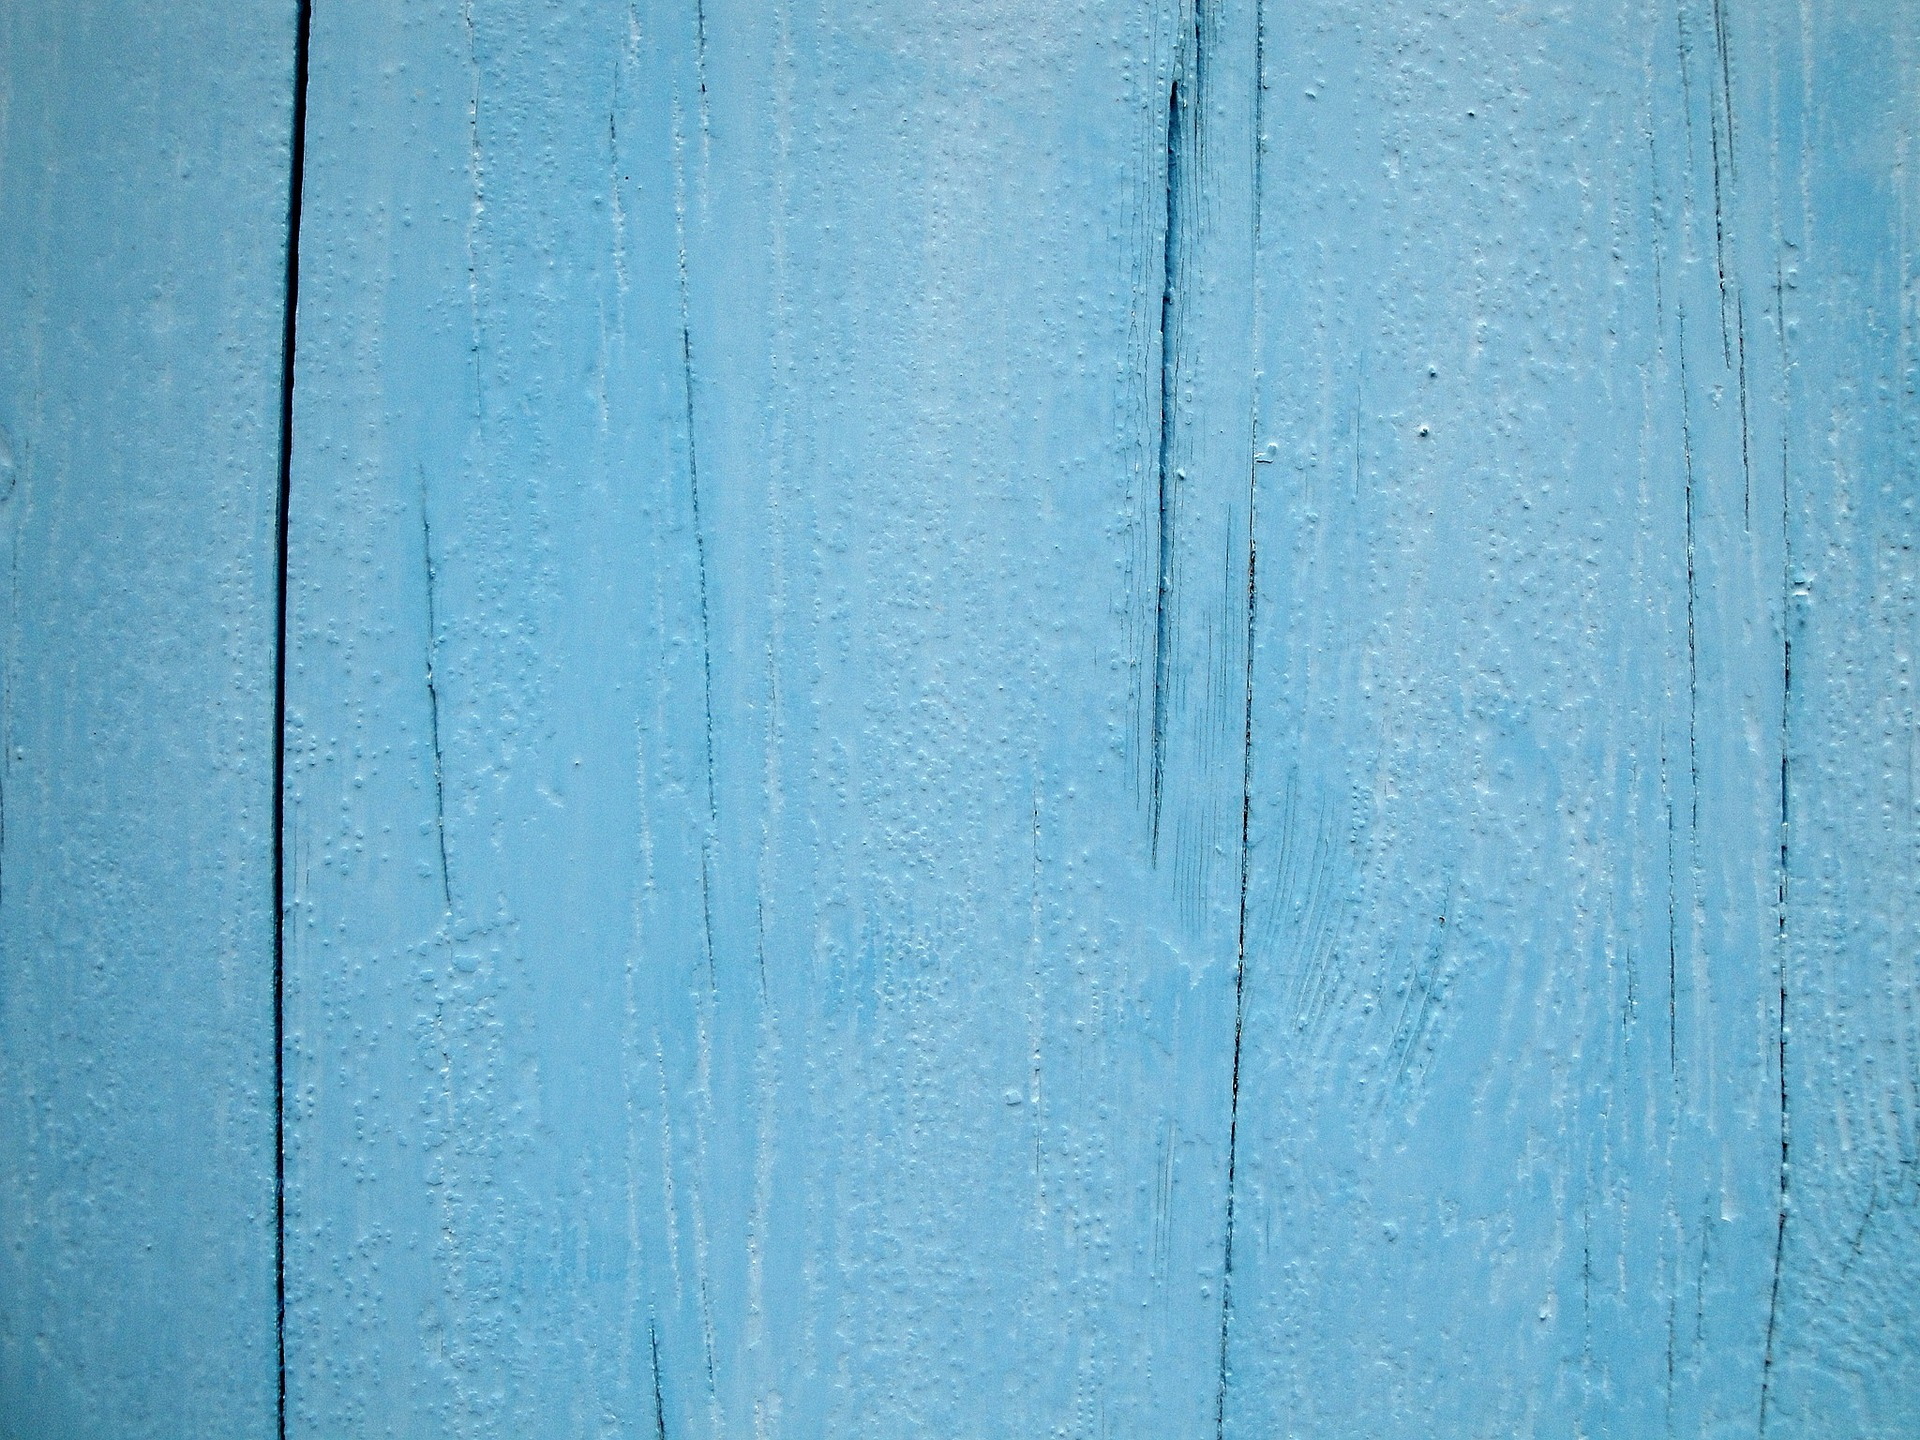 a close up of wood painted blue